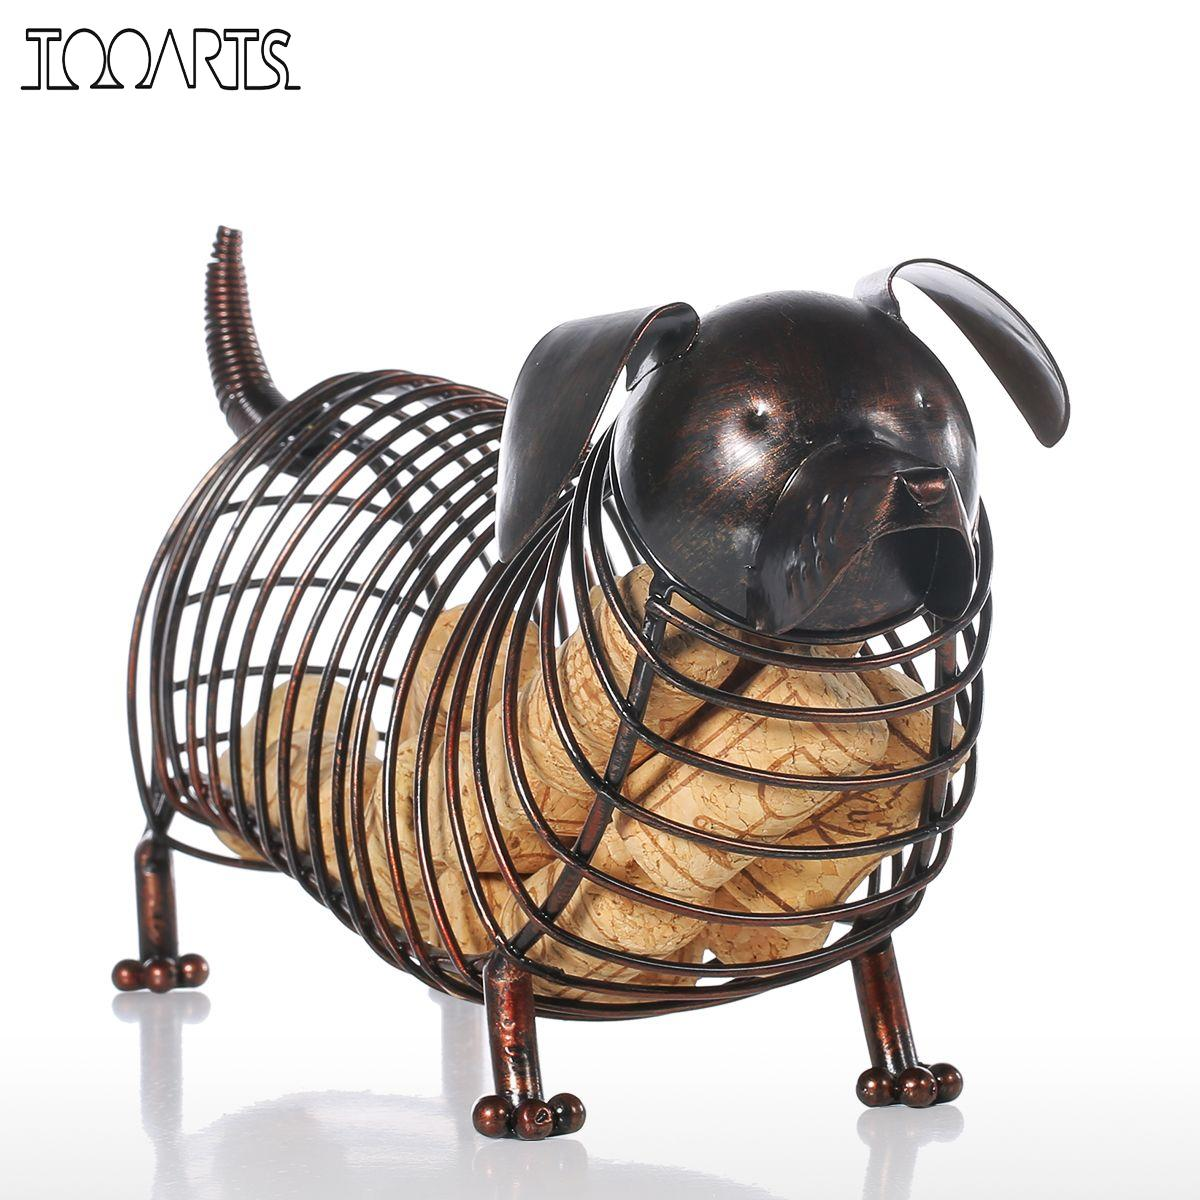 Tooarts Metal Animal Figurines Dachshund Wine Cork Container Moderne Kunstig Iron Craft Hjemmeinnredning Tilbehør Gave